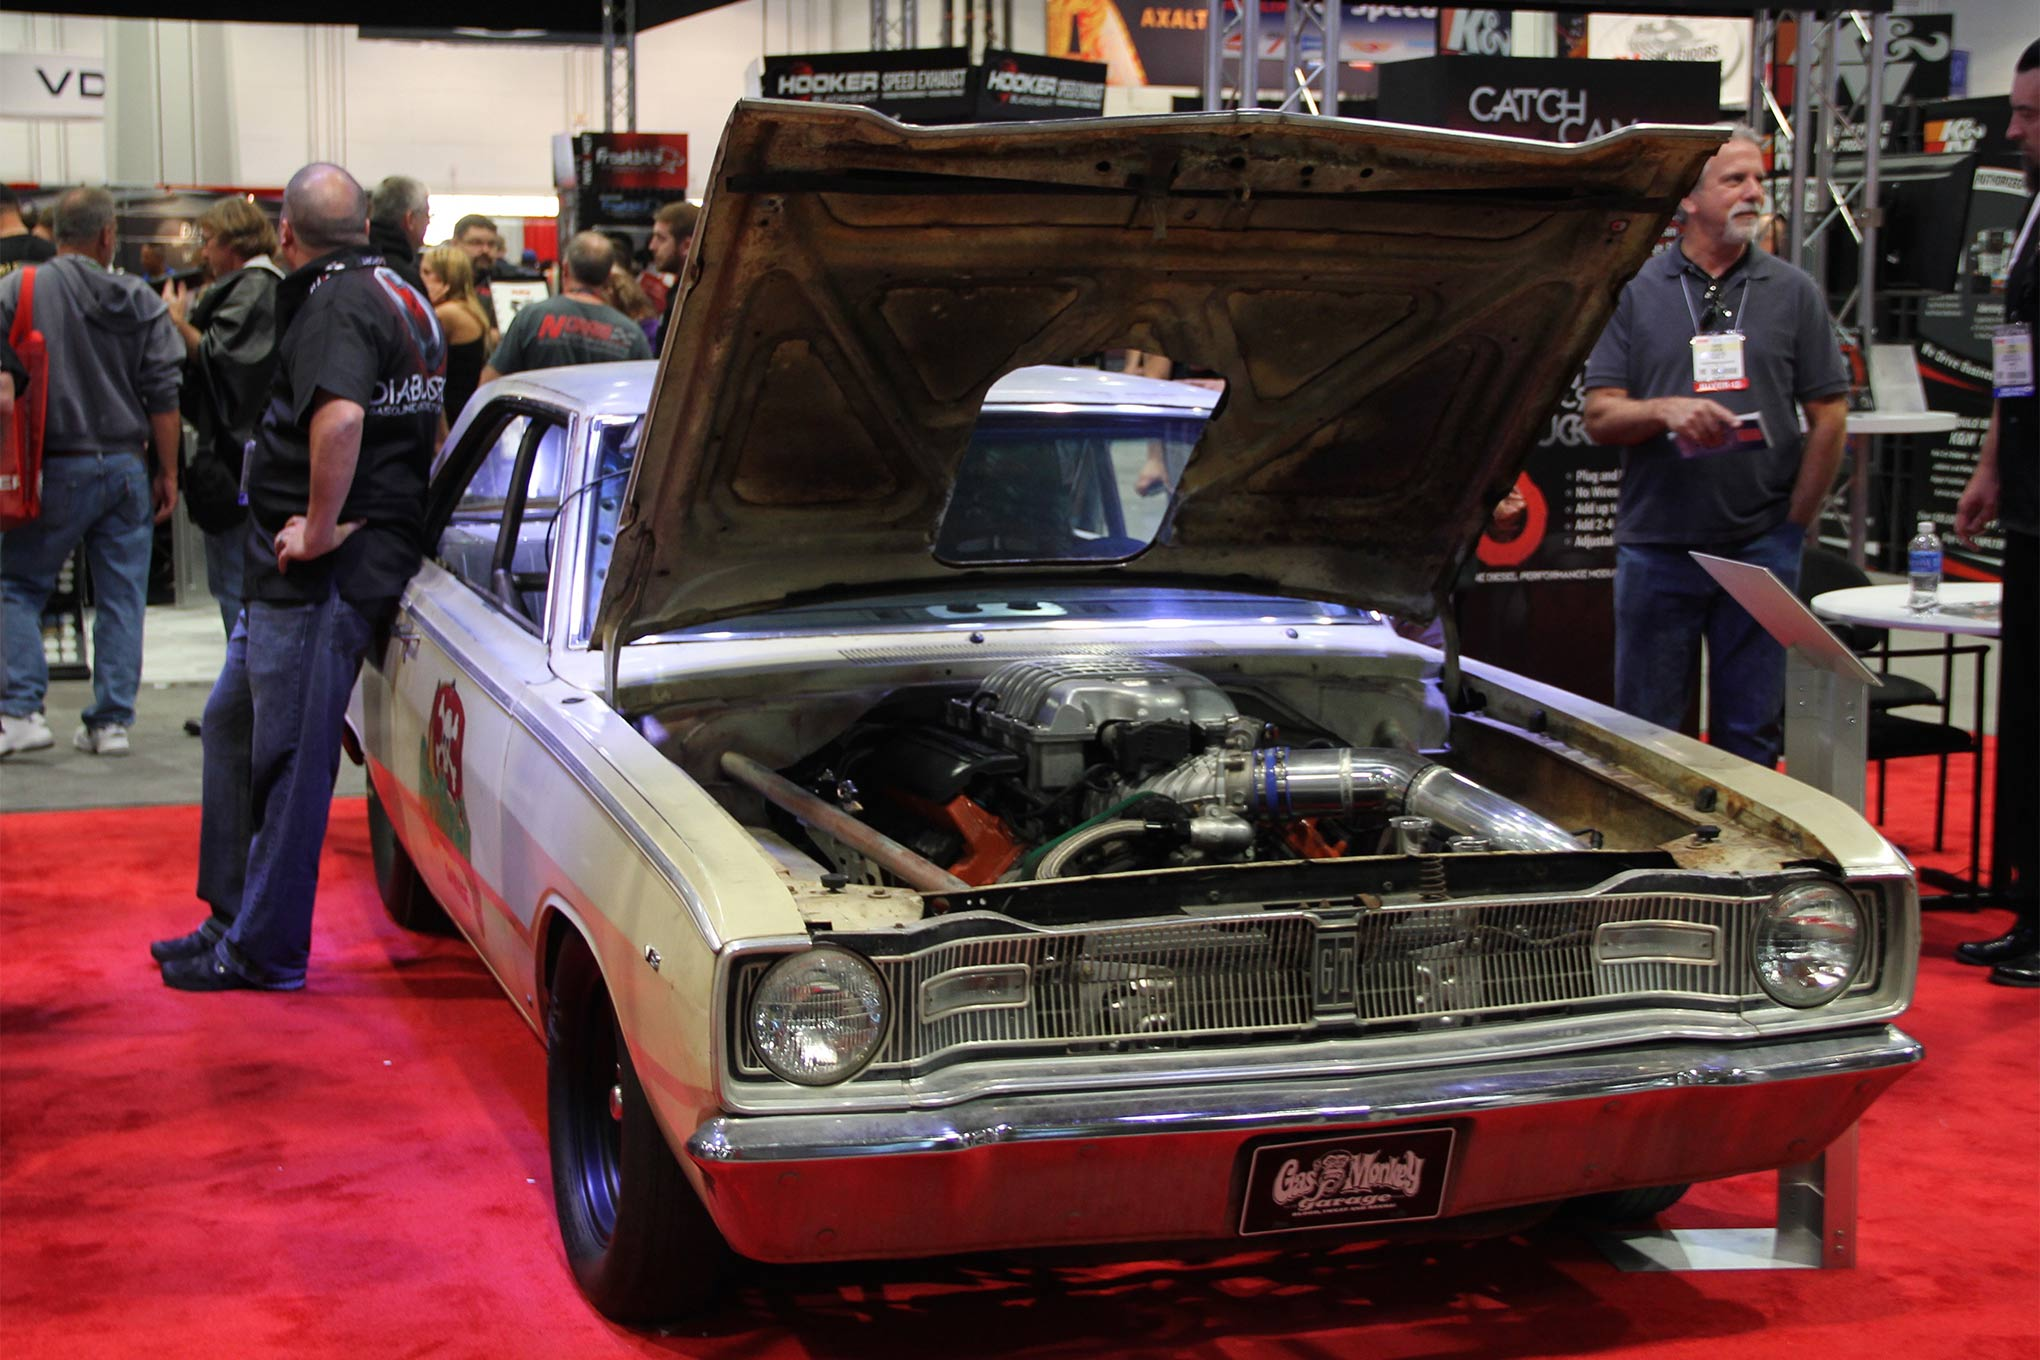 The Hellcat-powered Gas Monkey Garage 1967 Dodge Dart reposing at the 2015 SEMA Show in Las Vegas. The high placement of the engine necessitated relieving the hood for the air plenum. This was a moderately modified Dart with fabricated front-half and two-speed Powerglide transmission before Diablosport adapted the Hellcat engine and controllers that took three weeks to complete.